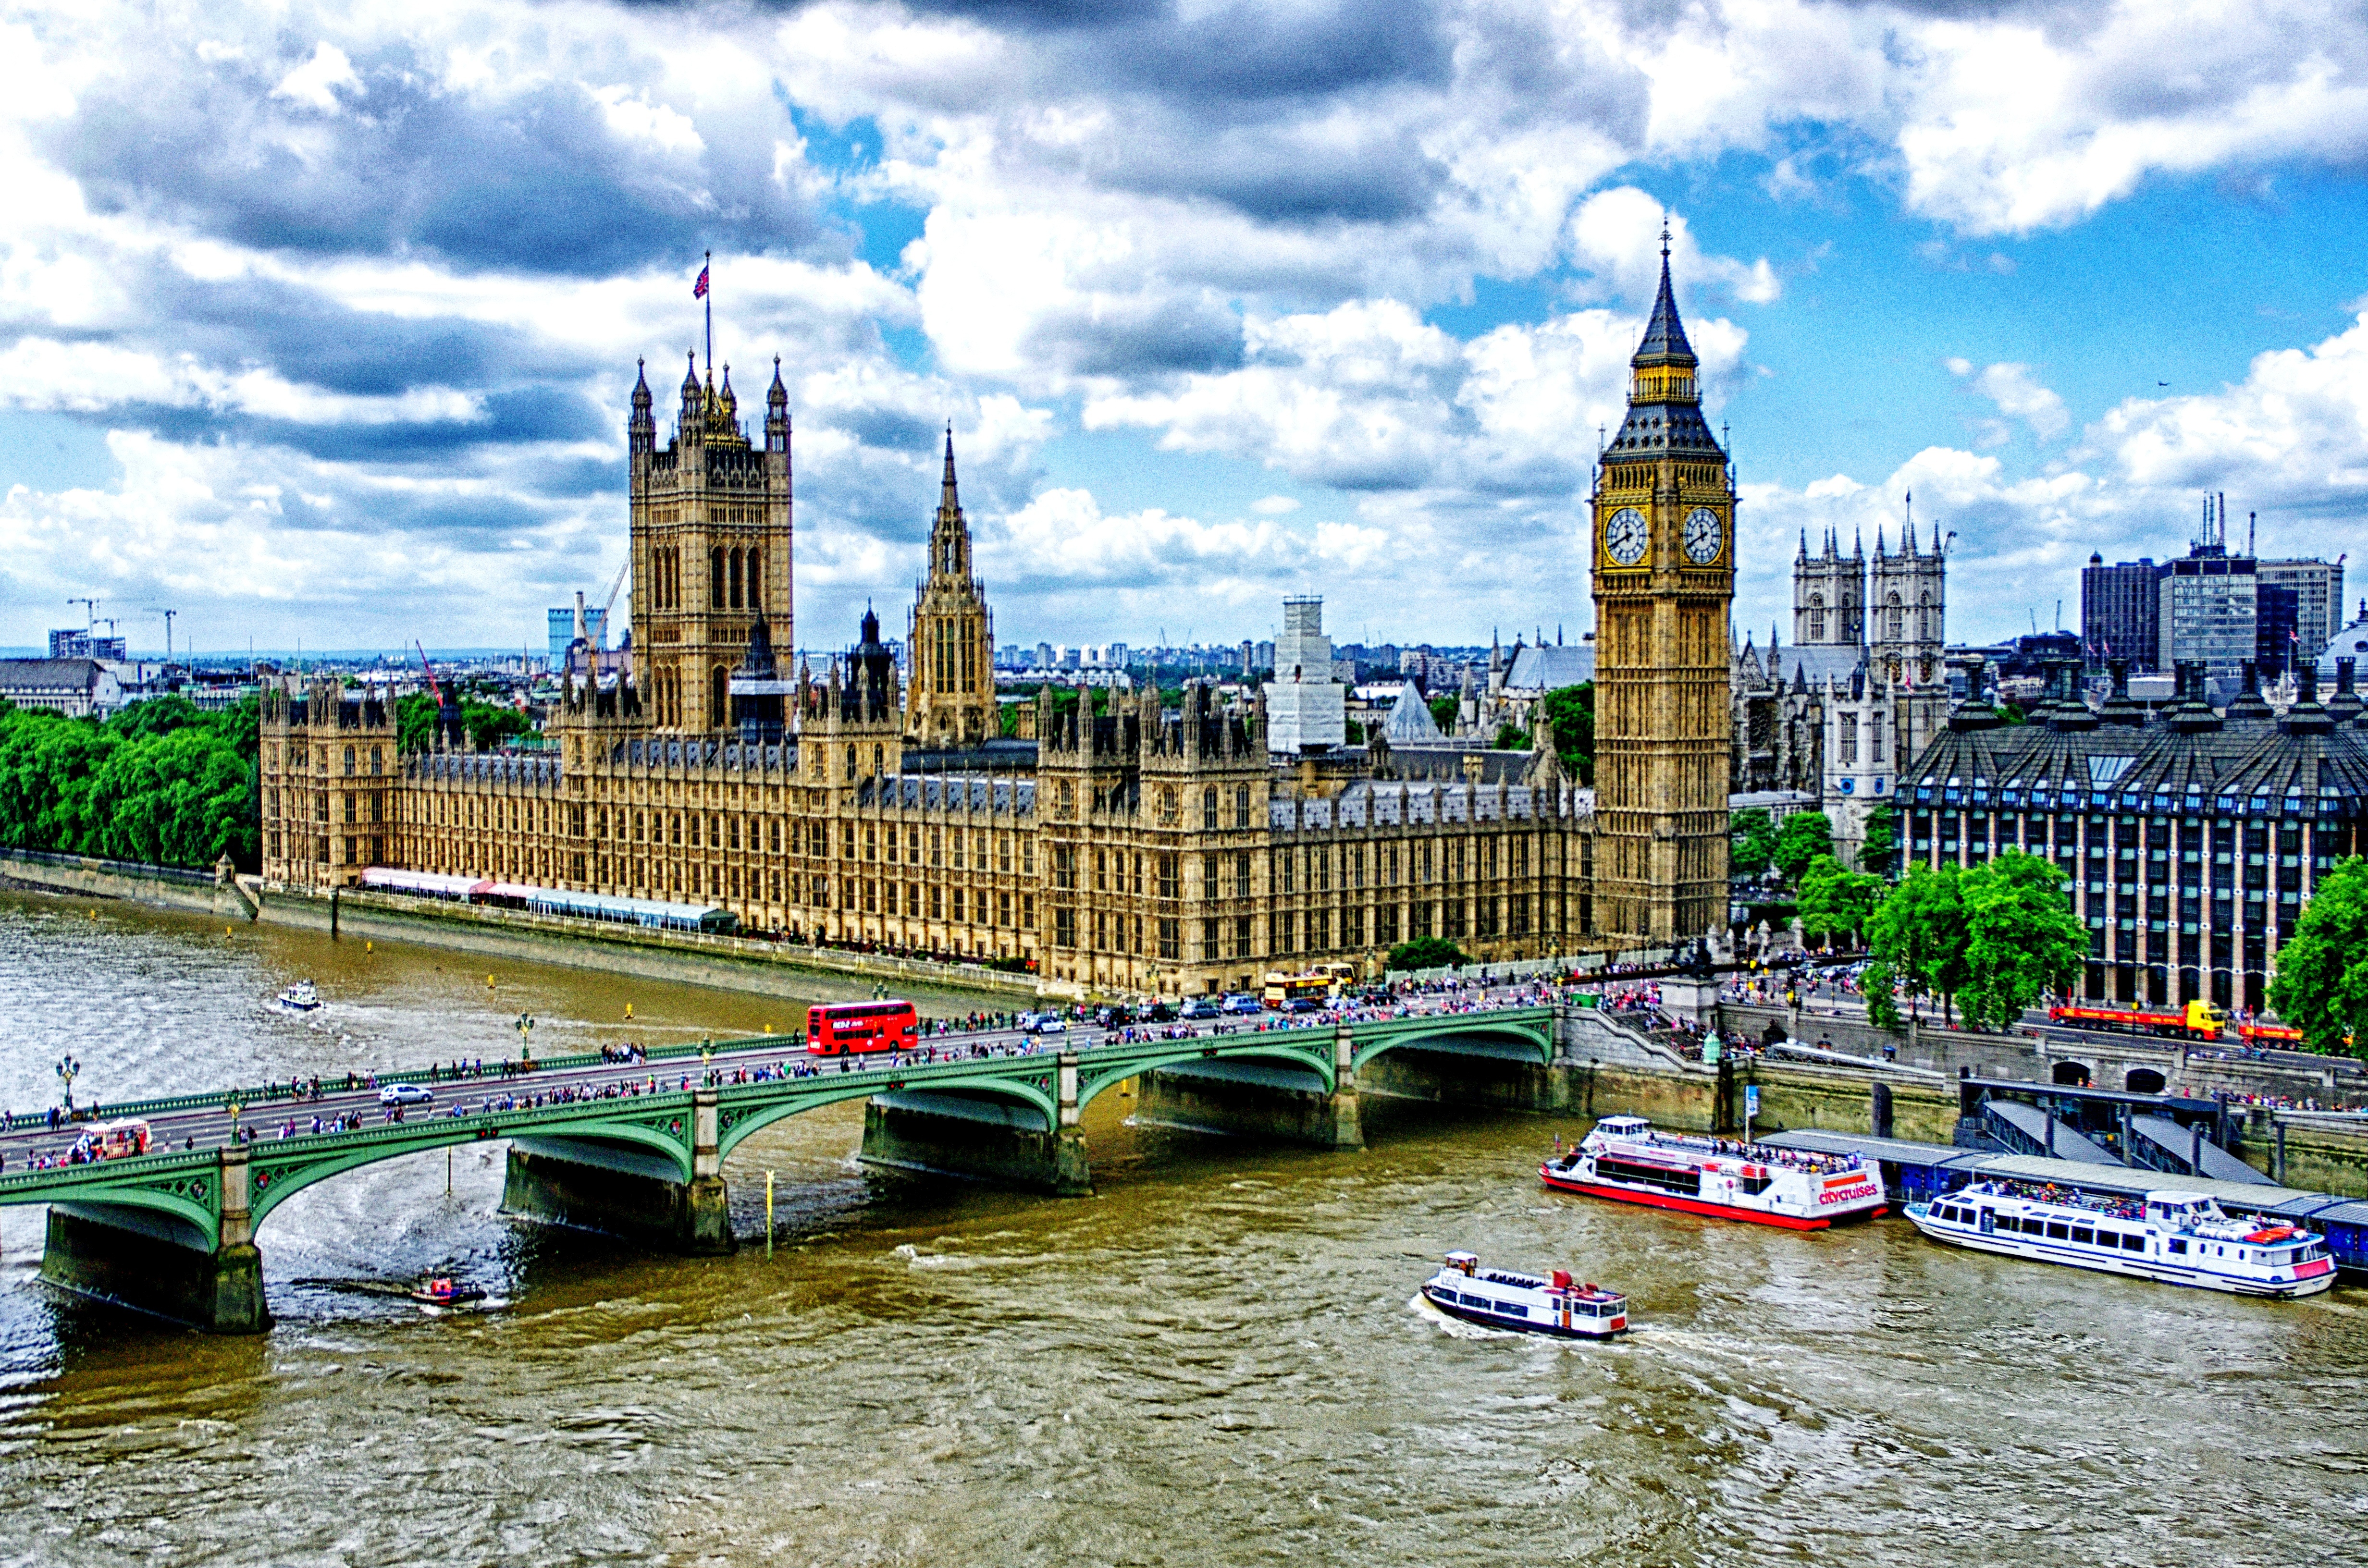 83942 download wallpaper Big Ben, London, Palace Of Westminster, Bridge, Rivers, Thames, Motor Ships, Ship, Hdr, Cities screensavers and pictures for free